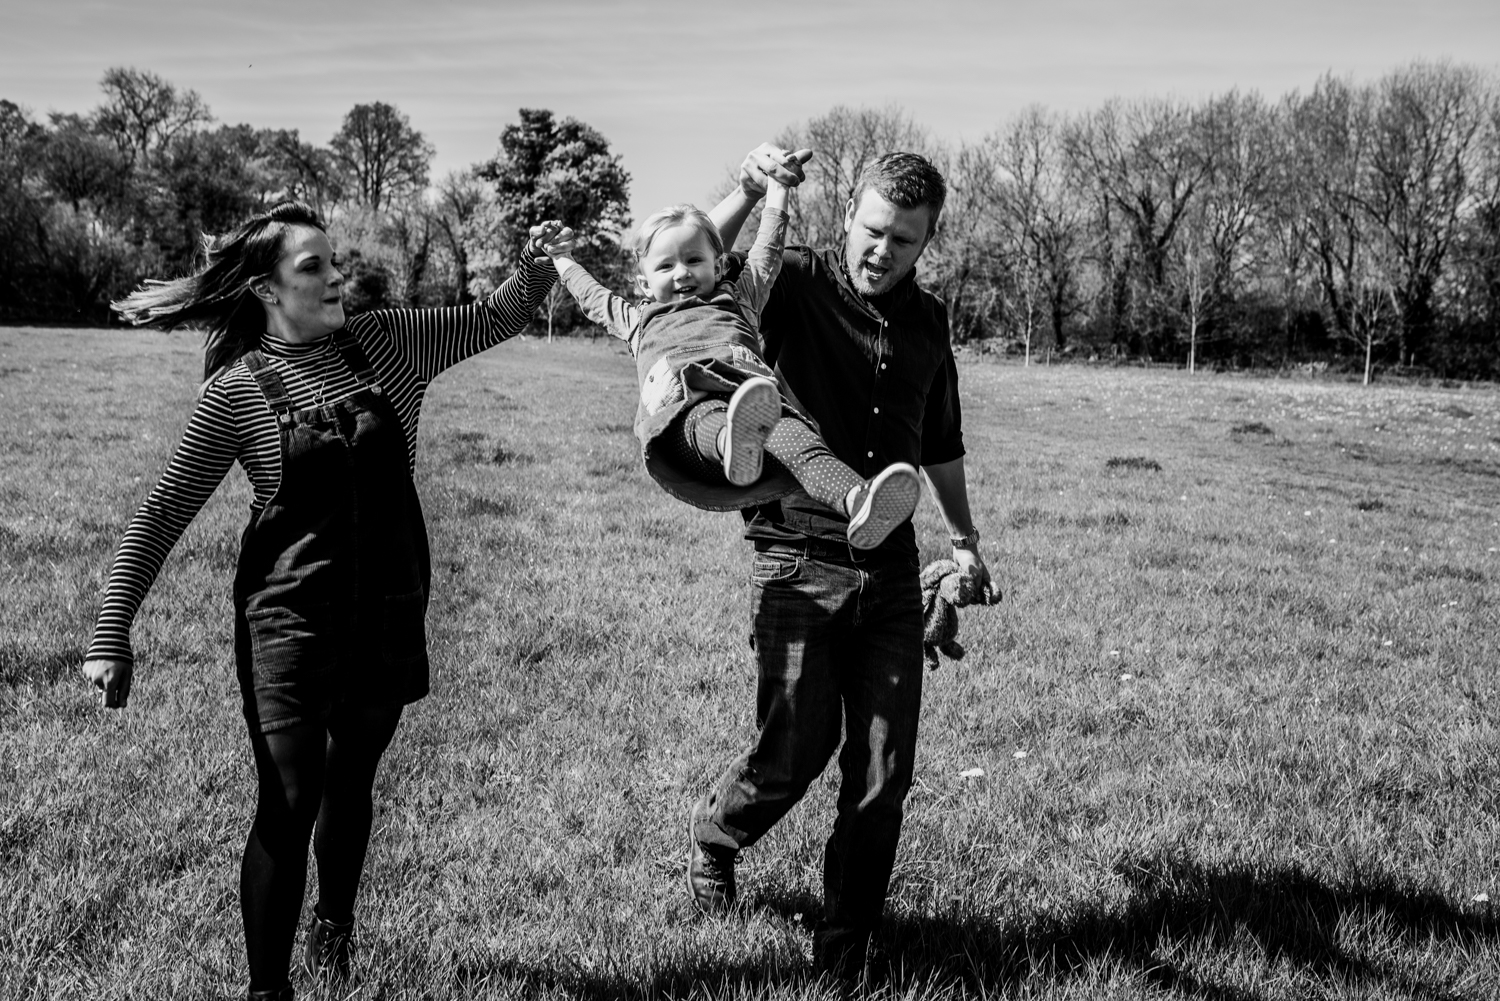 A little girl is swung high in the sky by her parents a sthey go on a walk in Somerset during this family natural outdoor photo shoot.